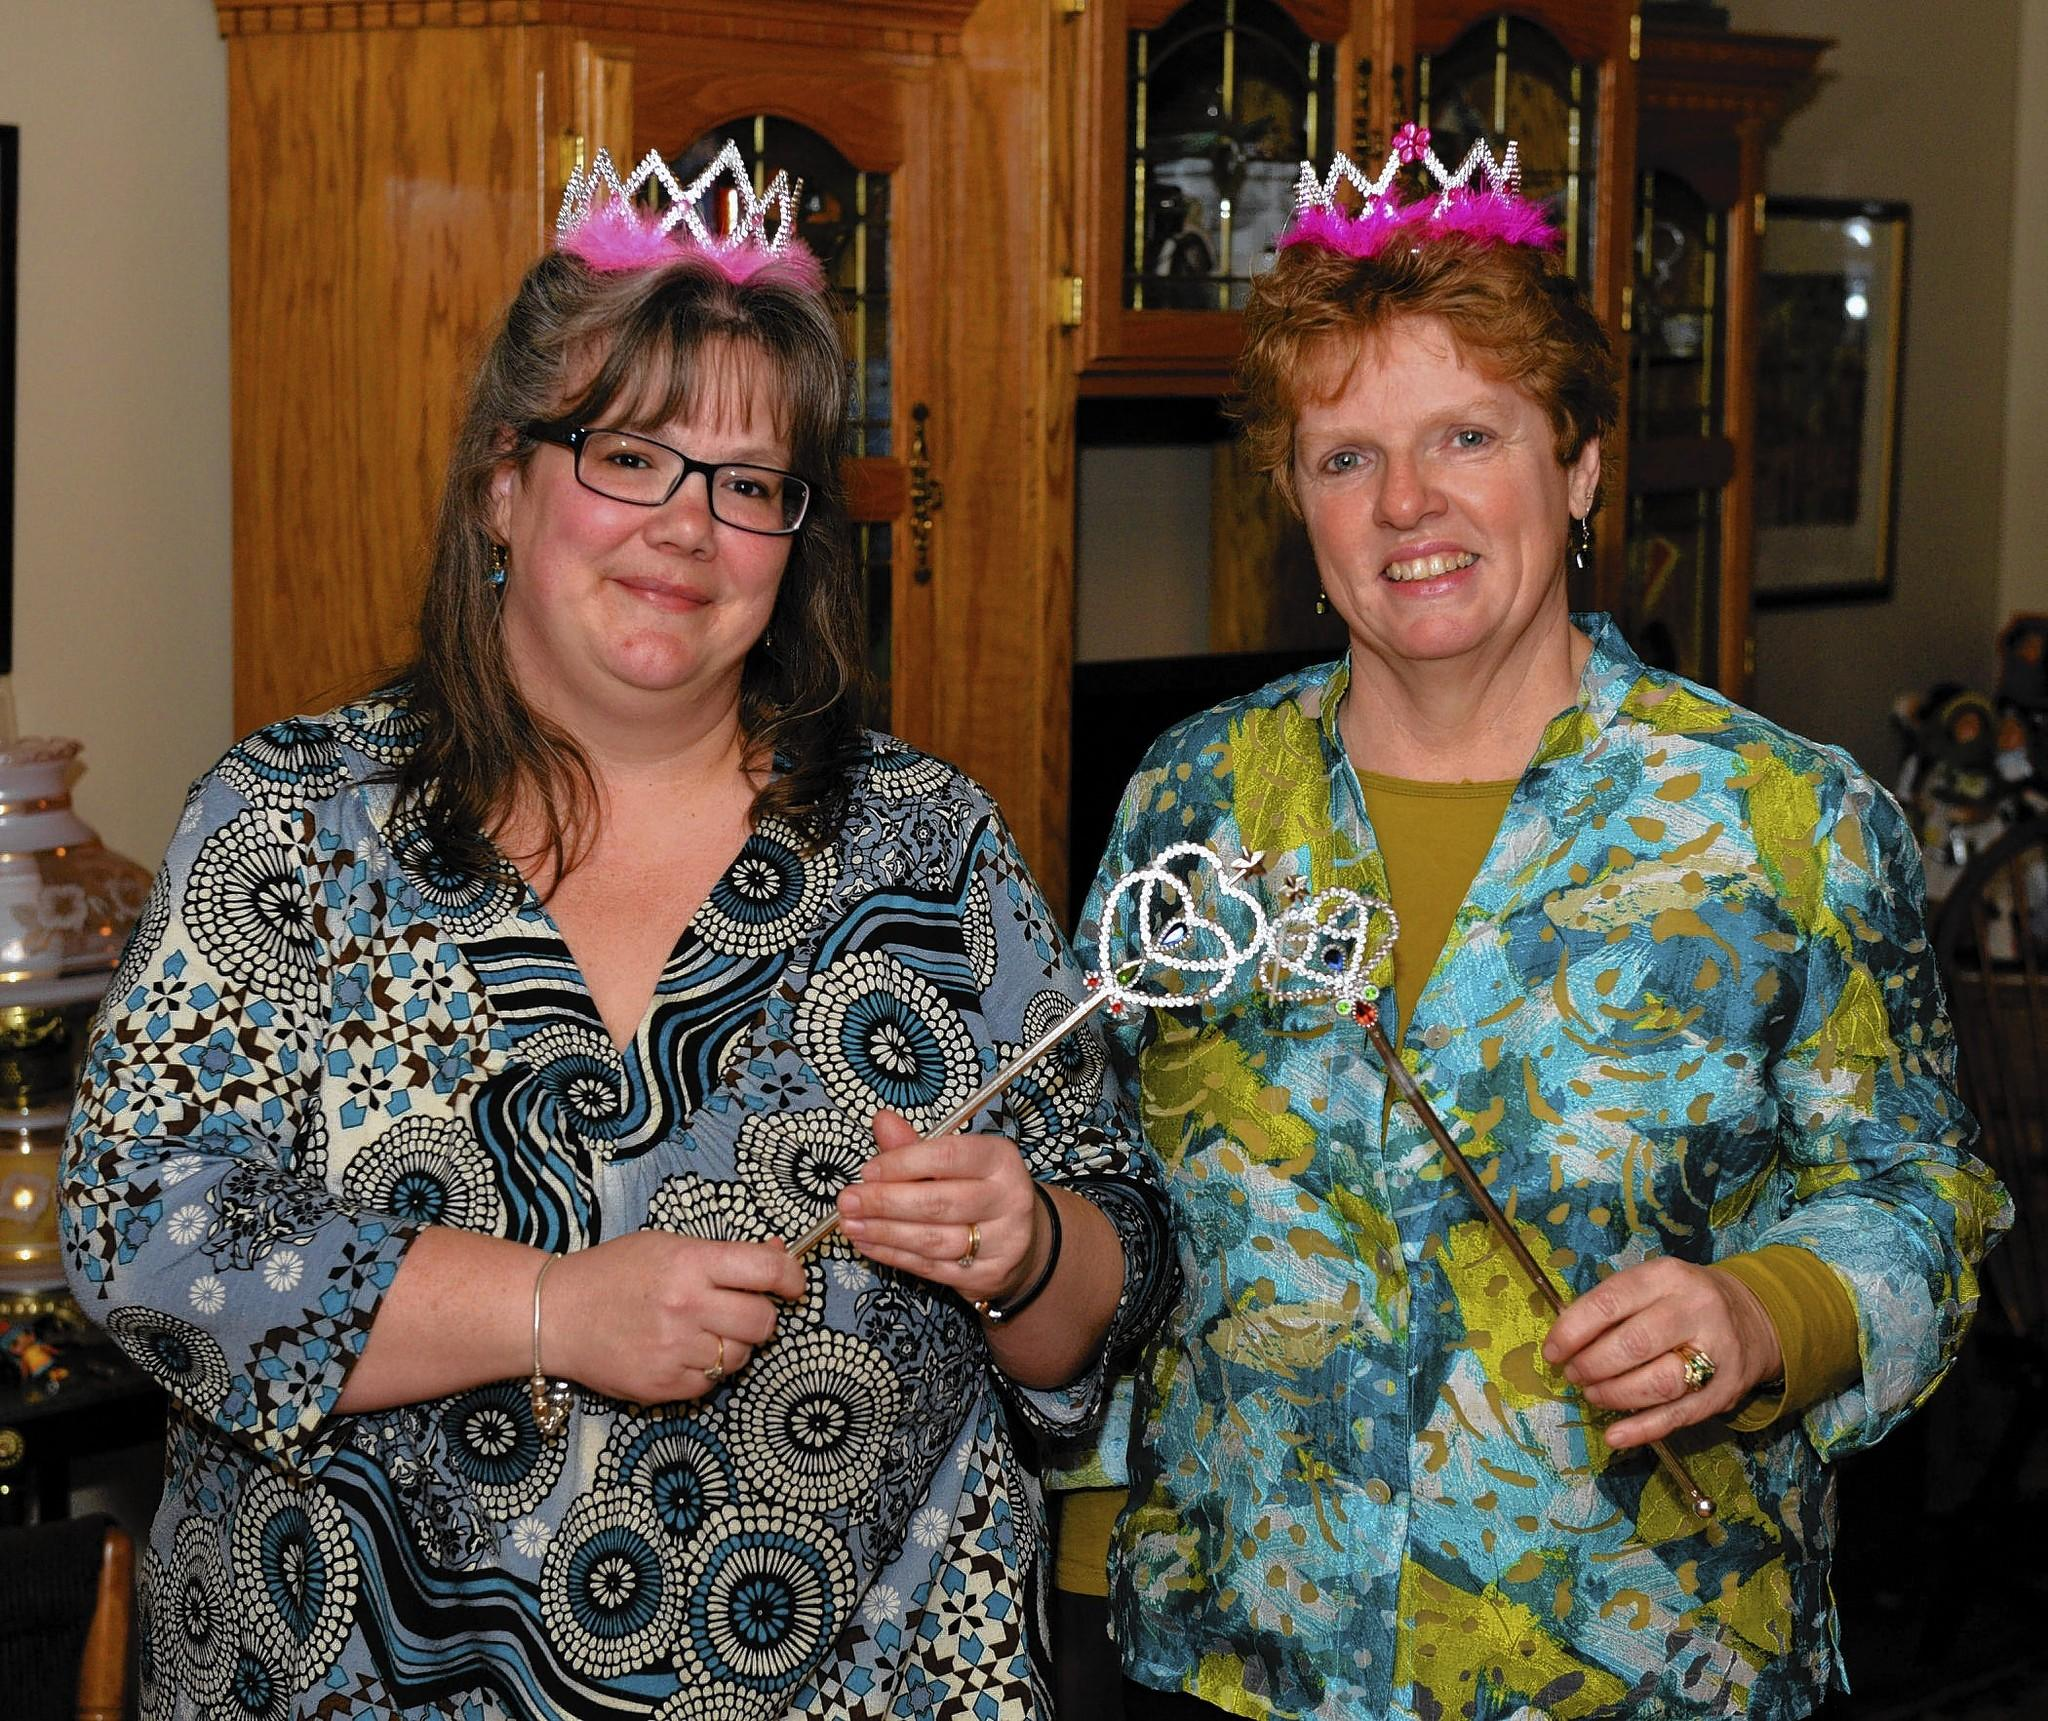 Queens of Cheap 2013 Jodi Godown Hilt (left) and Julie Sanders found a clever way to save a few bucks and take some of the sting out of turning a year older. They've been swapping the same birthday card for more than 20 years.